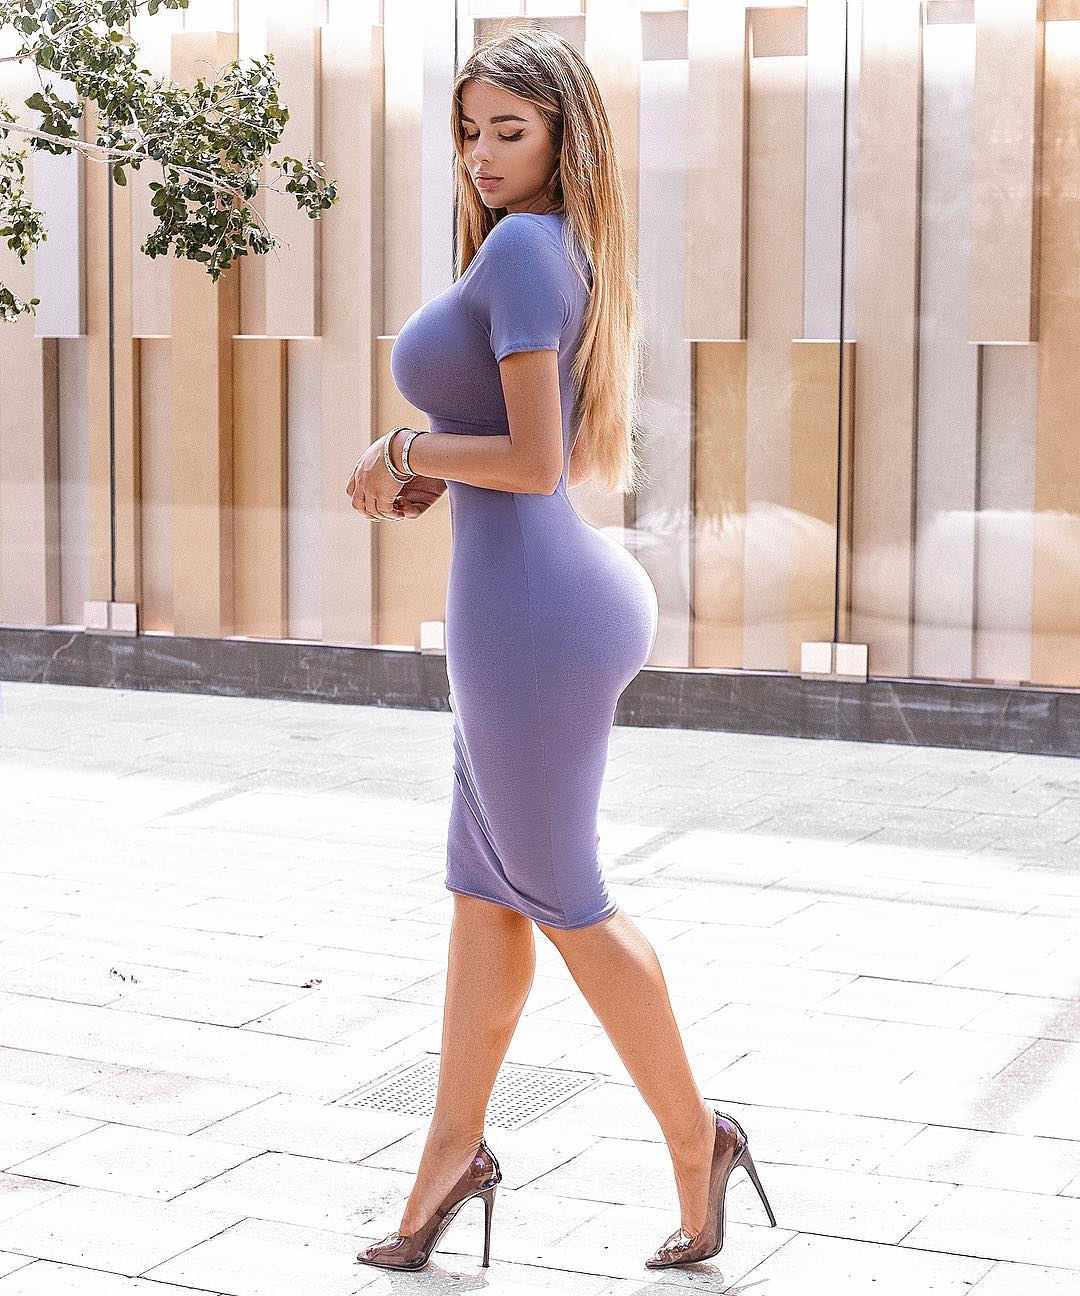 Anastasiya-Kvitko-Wallpapers-Insta-Fit-Bio-9